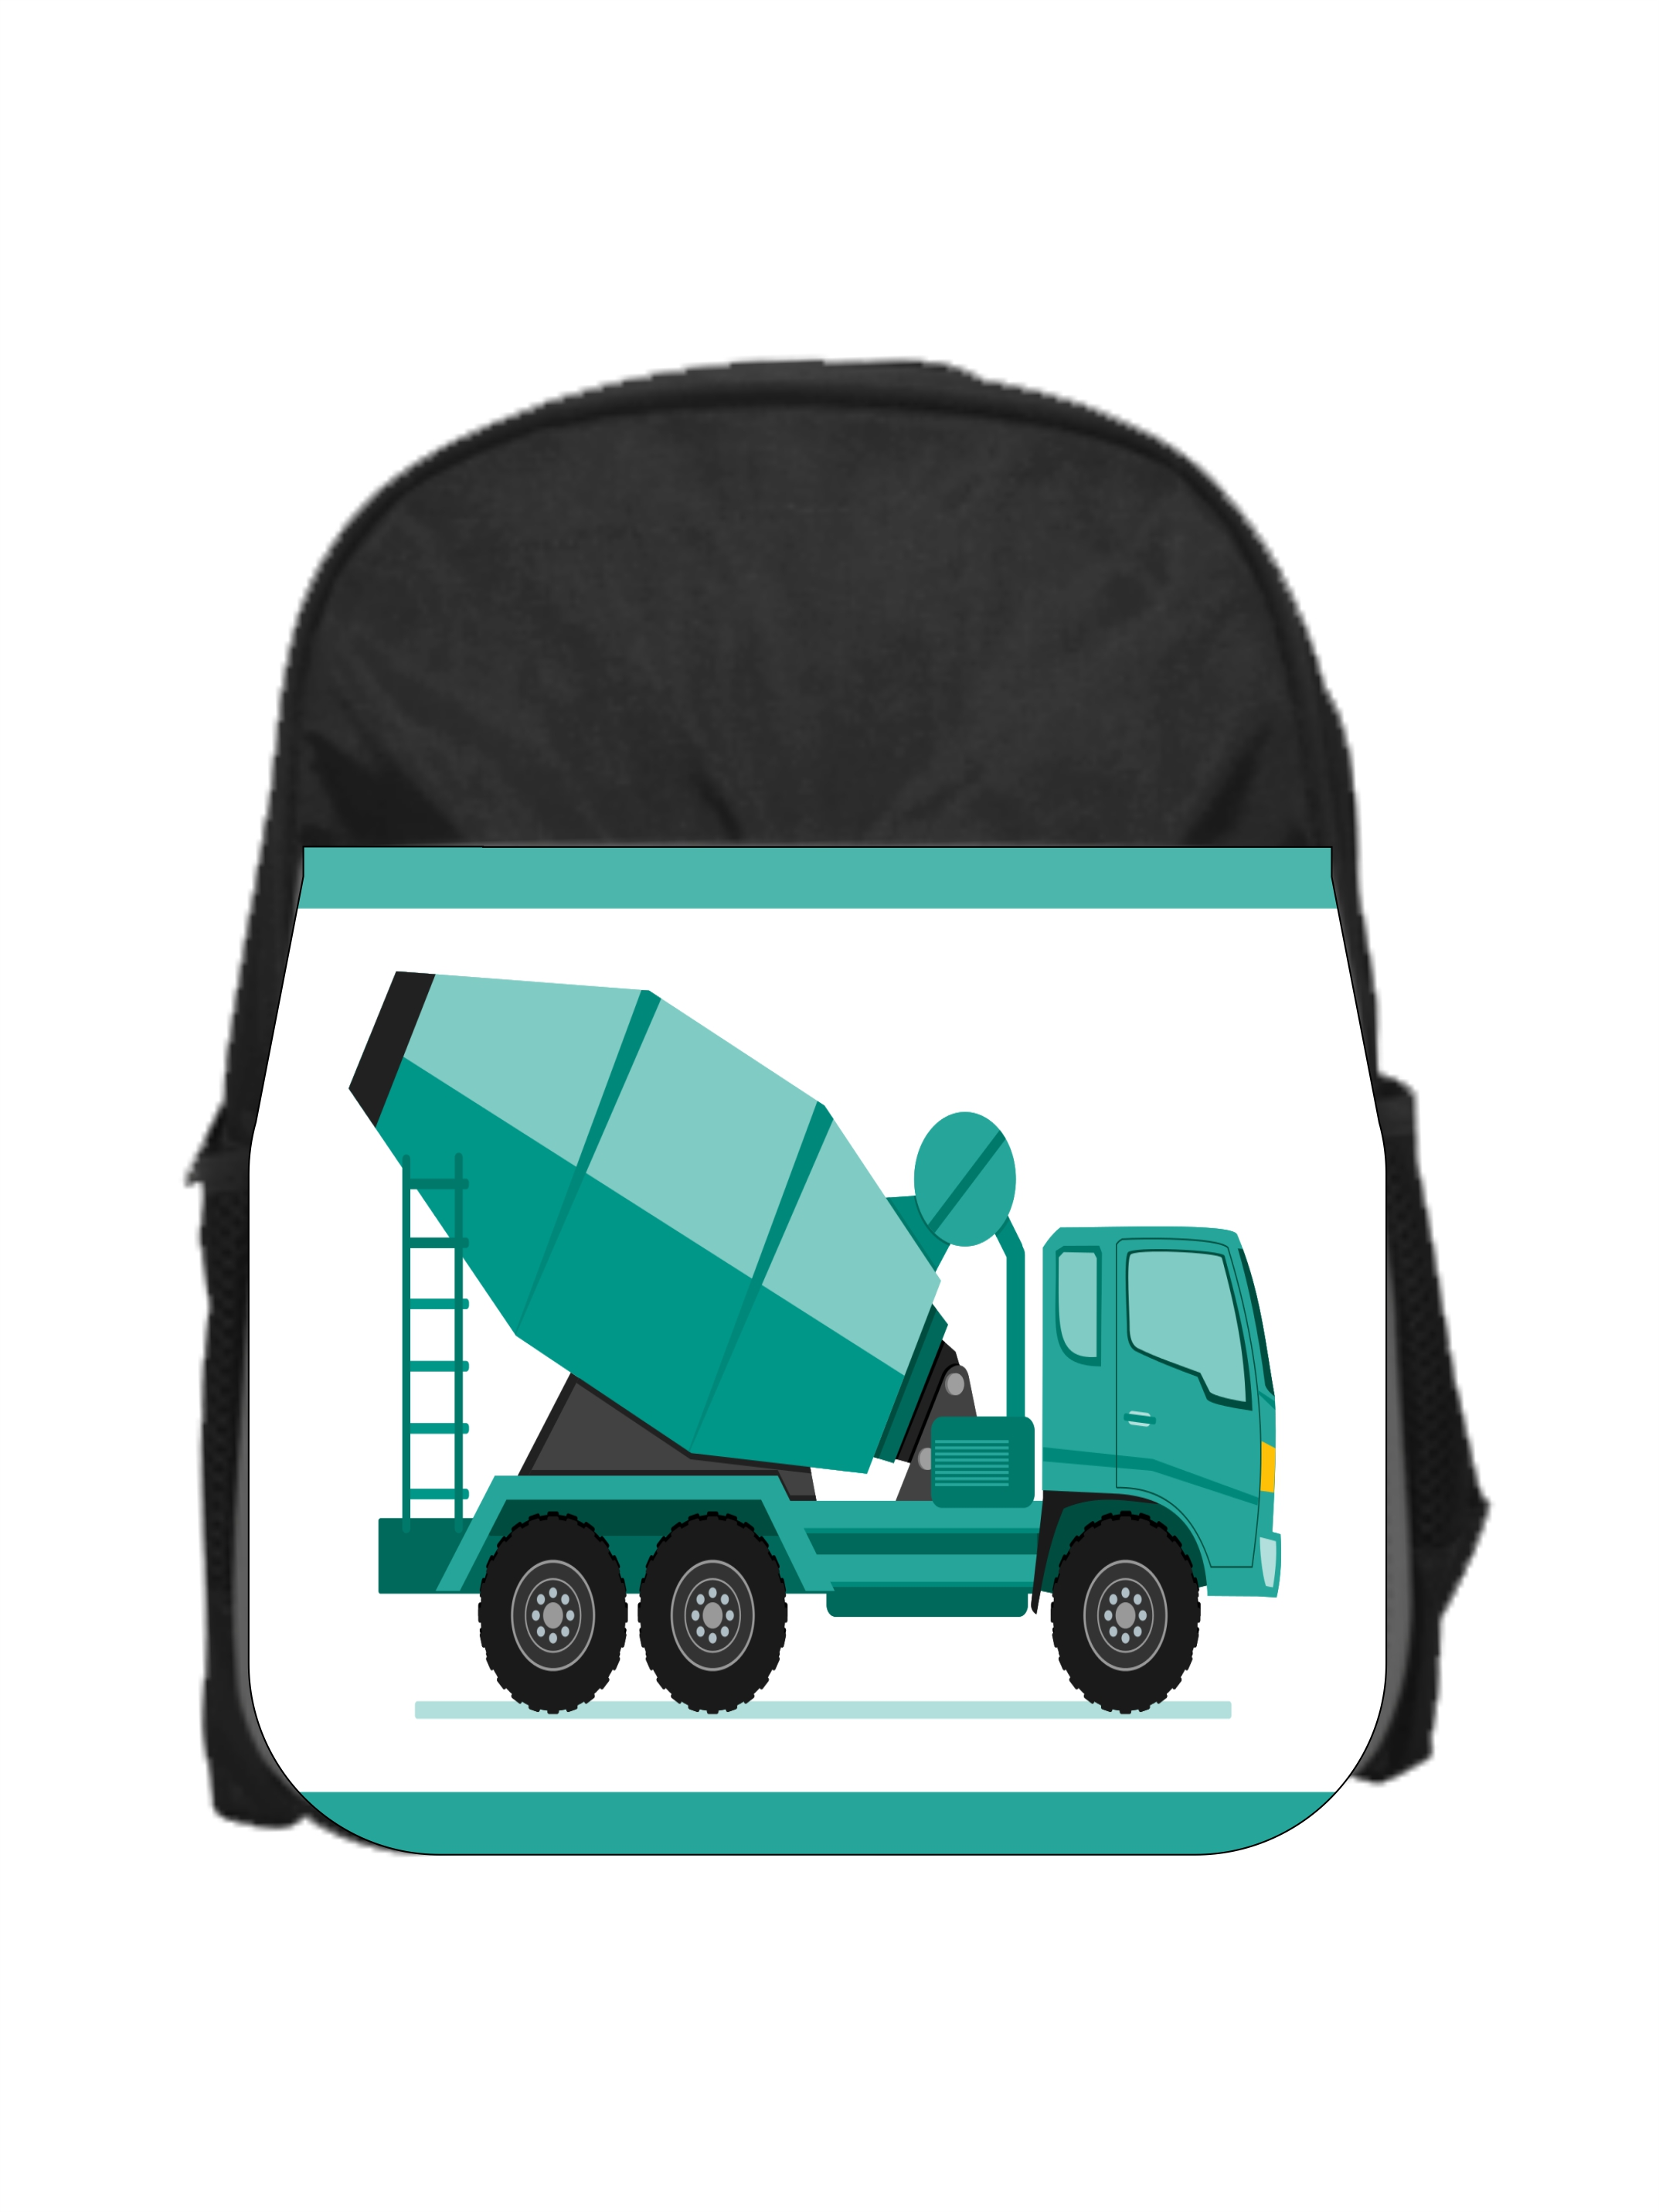 "Blue Cement Mixer Truck Boys 13"" x 10"" Black Preschool Toddler Children's Backpack by Accessory Avenue"